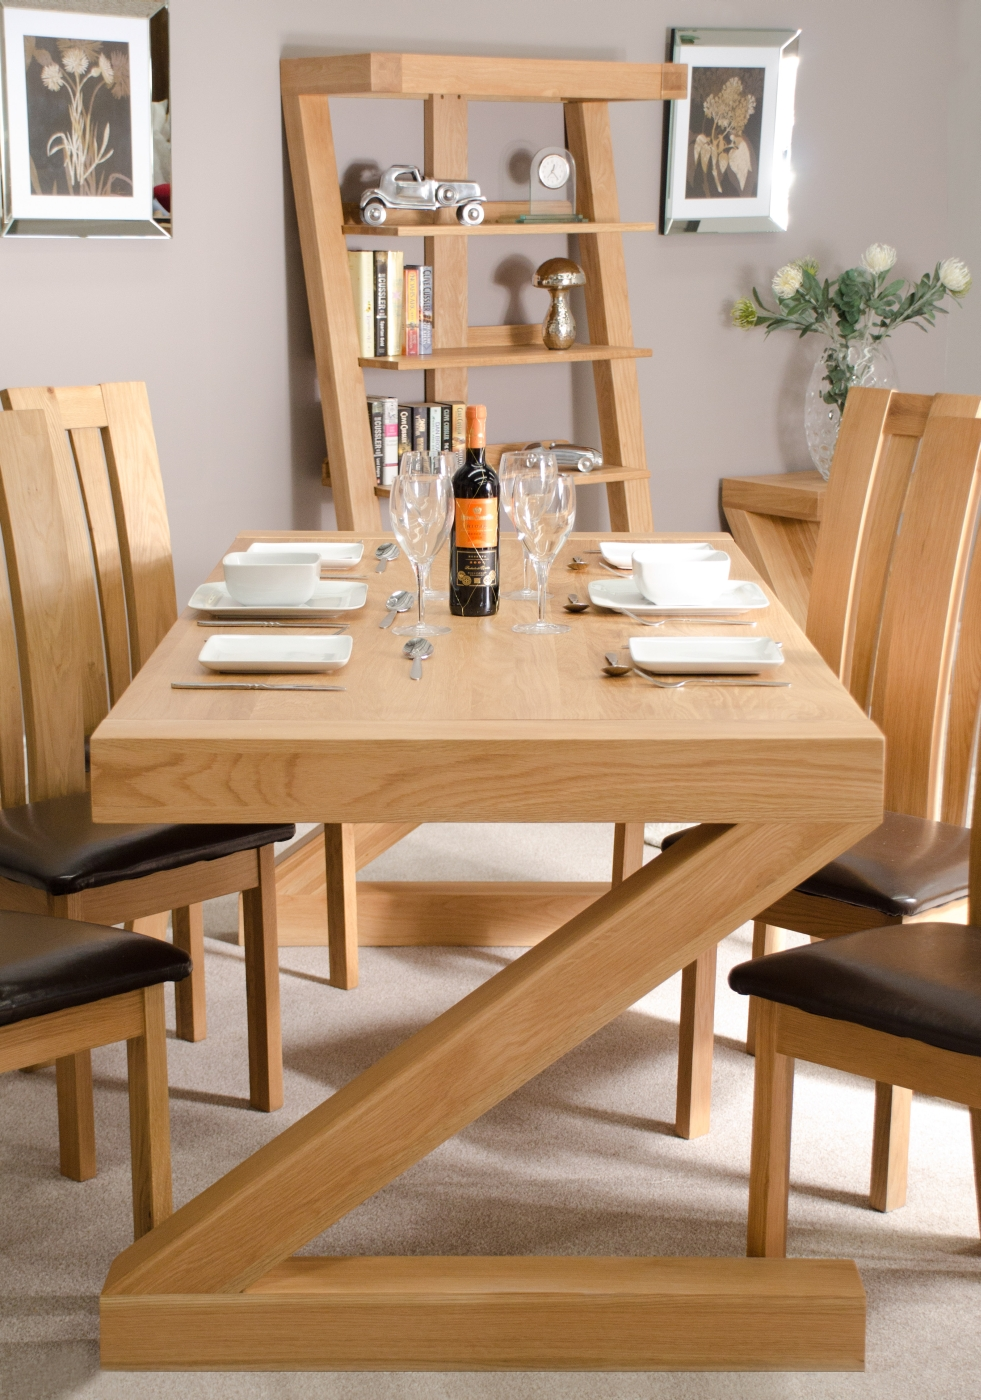 Z Solid Oak Designer Furniture Large Chunky Dining Room Table Ebay